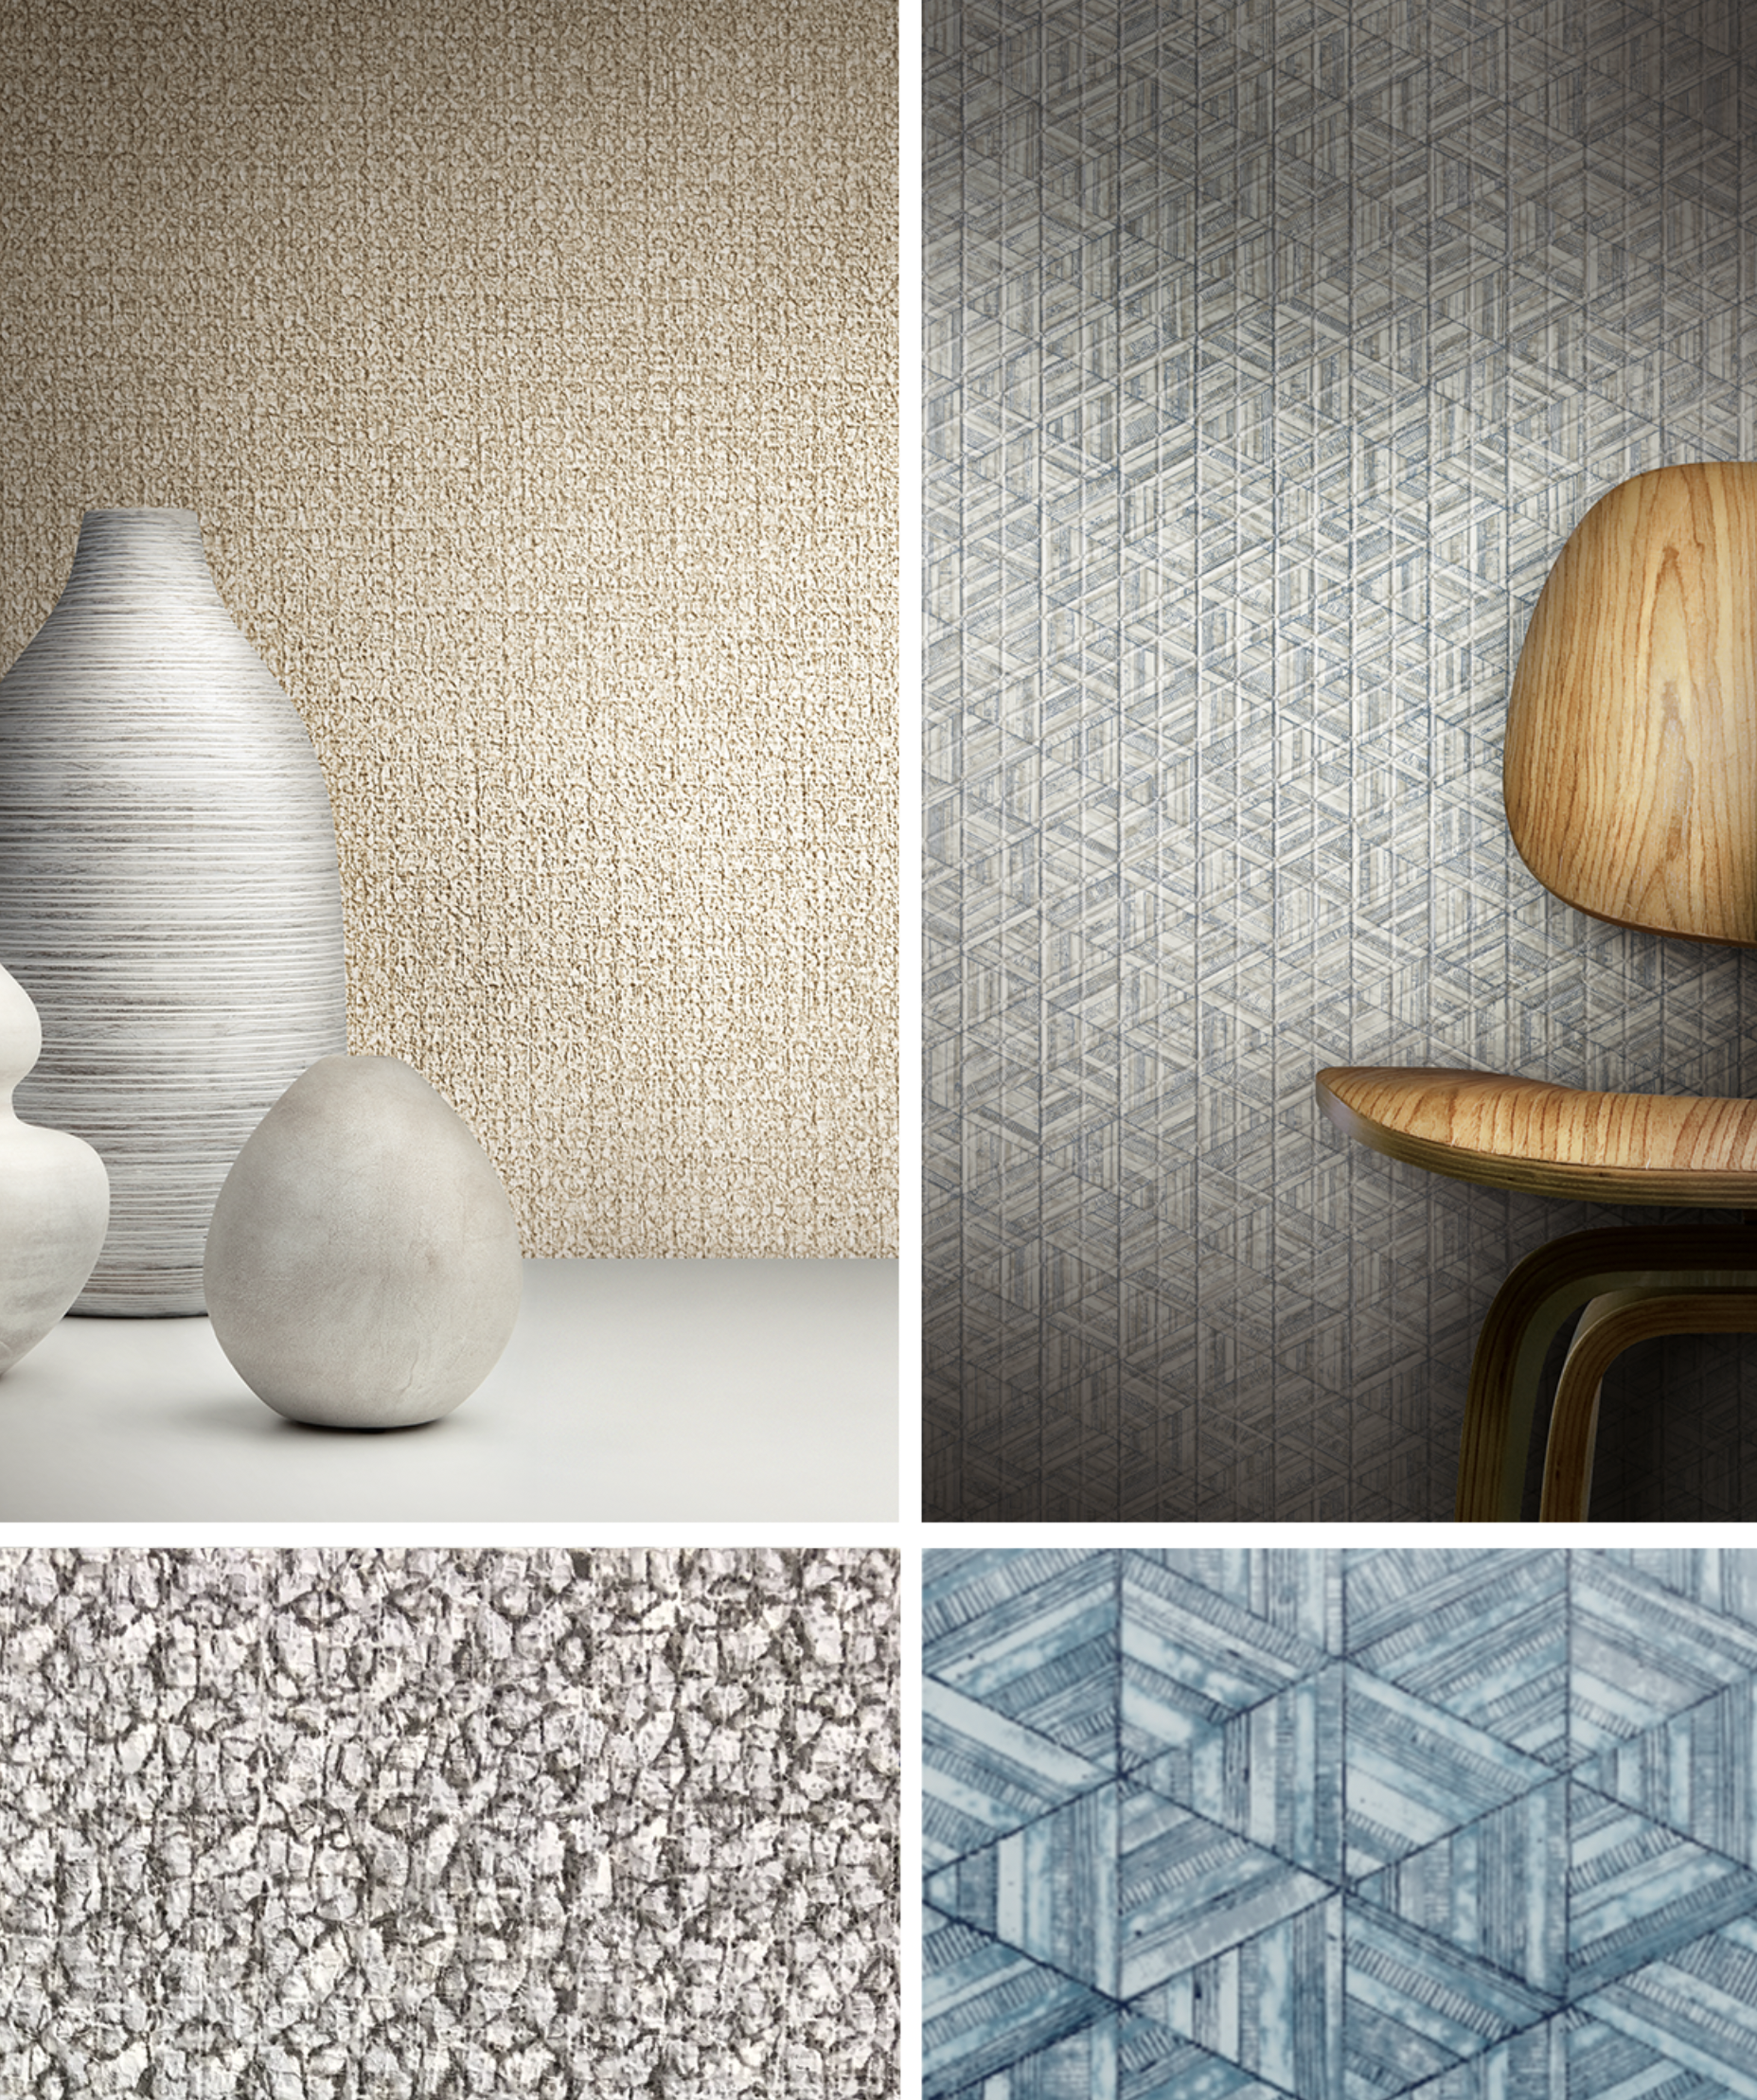 Product Shown: Stacy Garcia for York Wallcovering: Inlay and Aviary